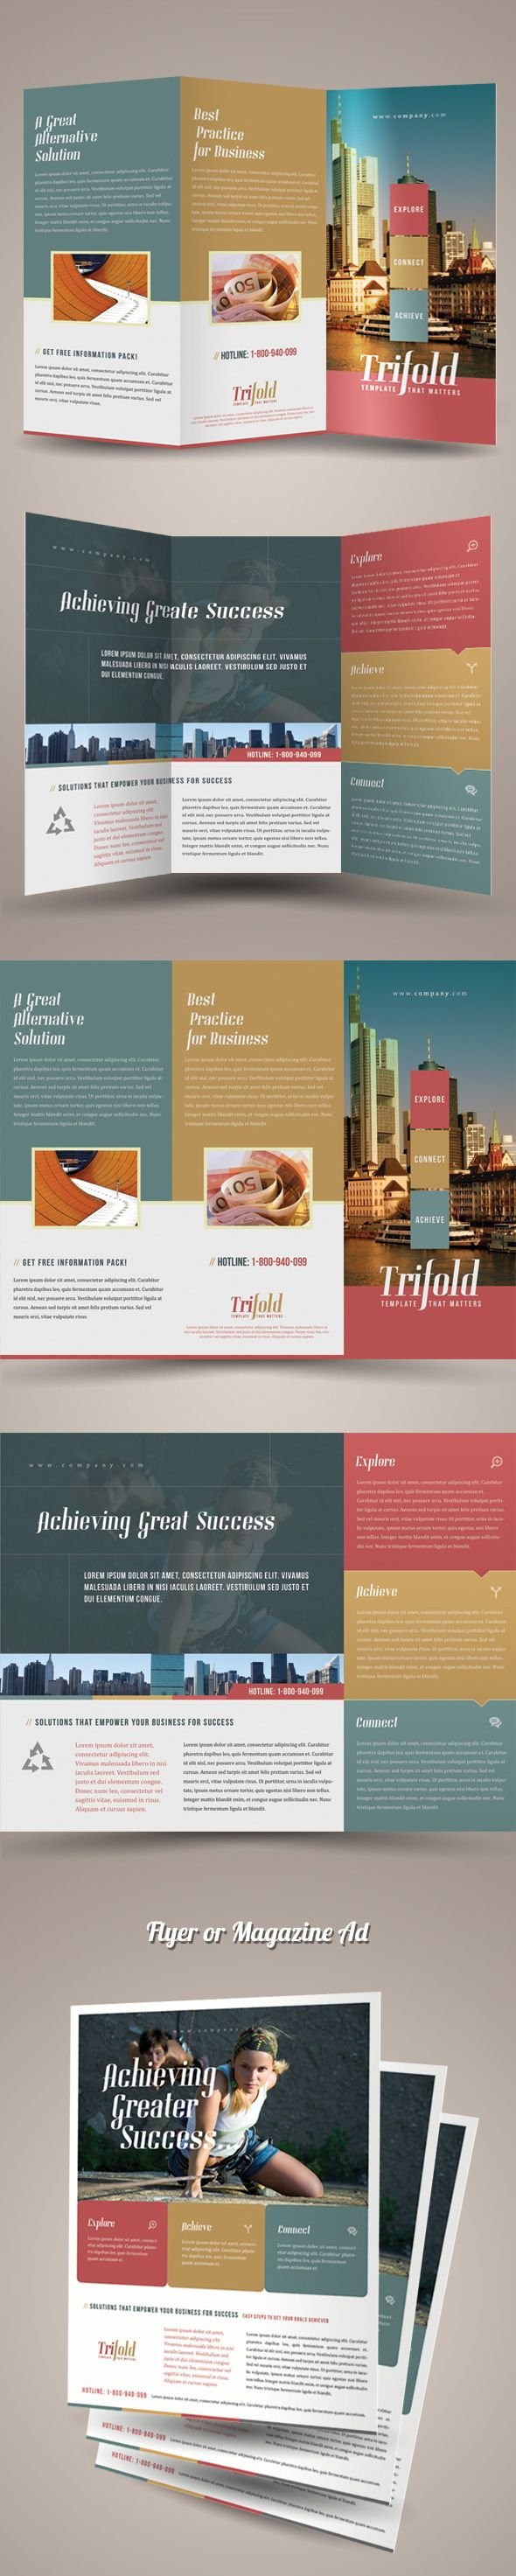 Trifold Brochure Template by Kinzi Wij, via Behance